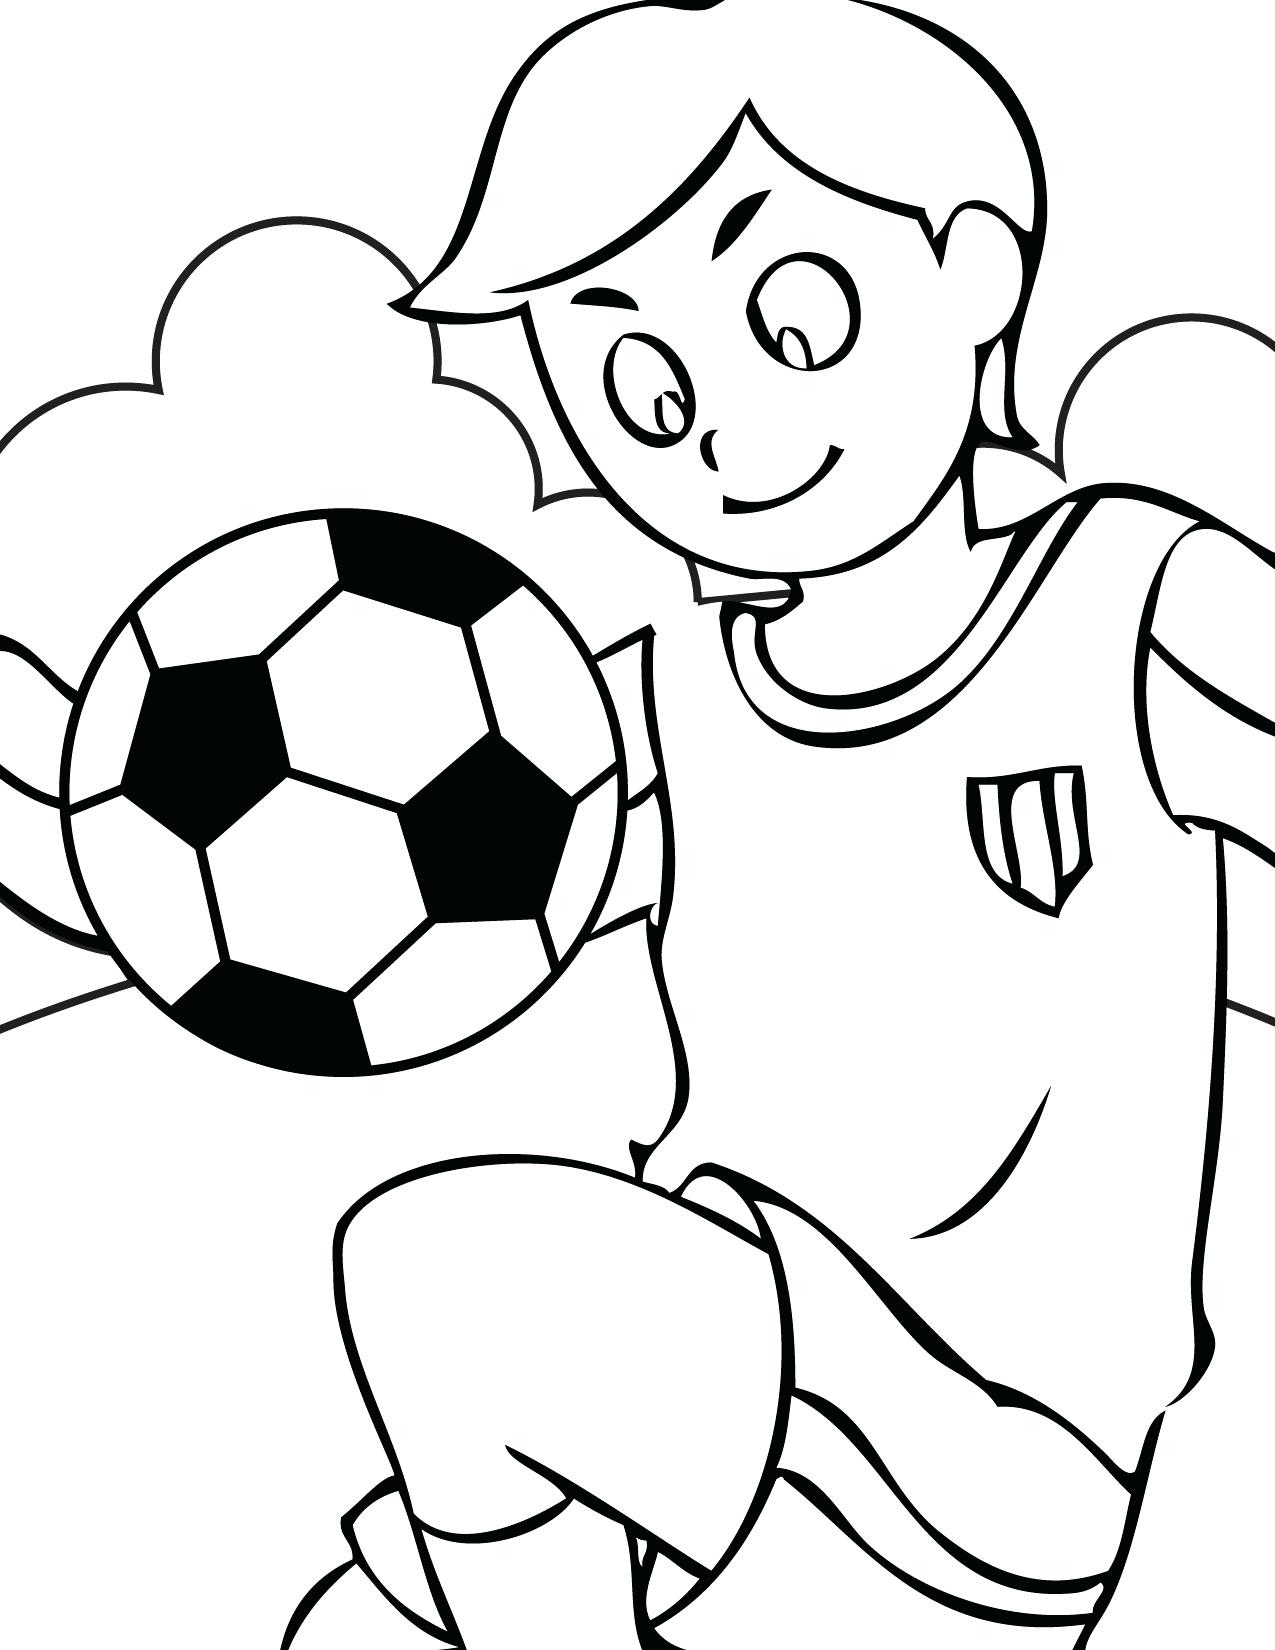 1275x1650 Coloring Pages Soccer Ball Coloring Page Pages Printable